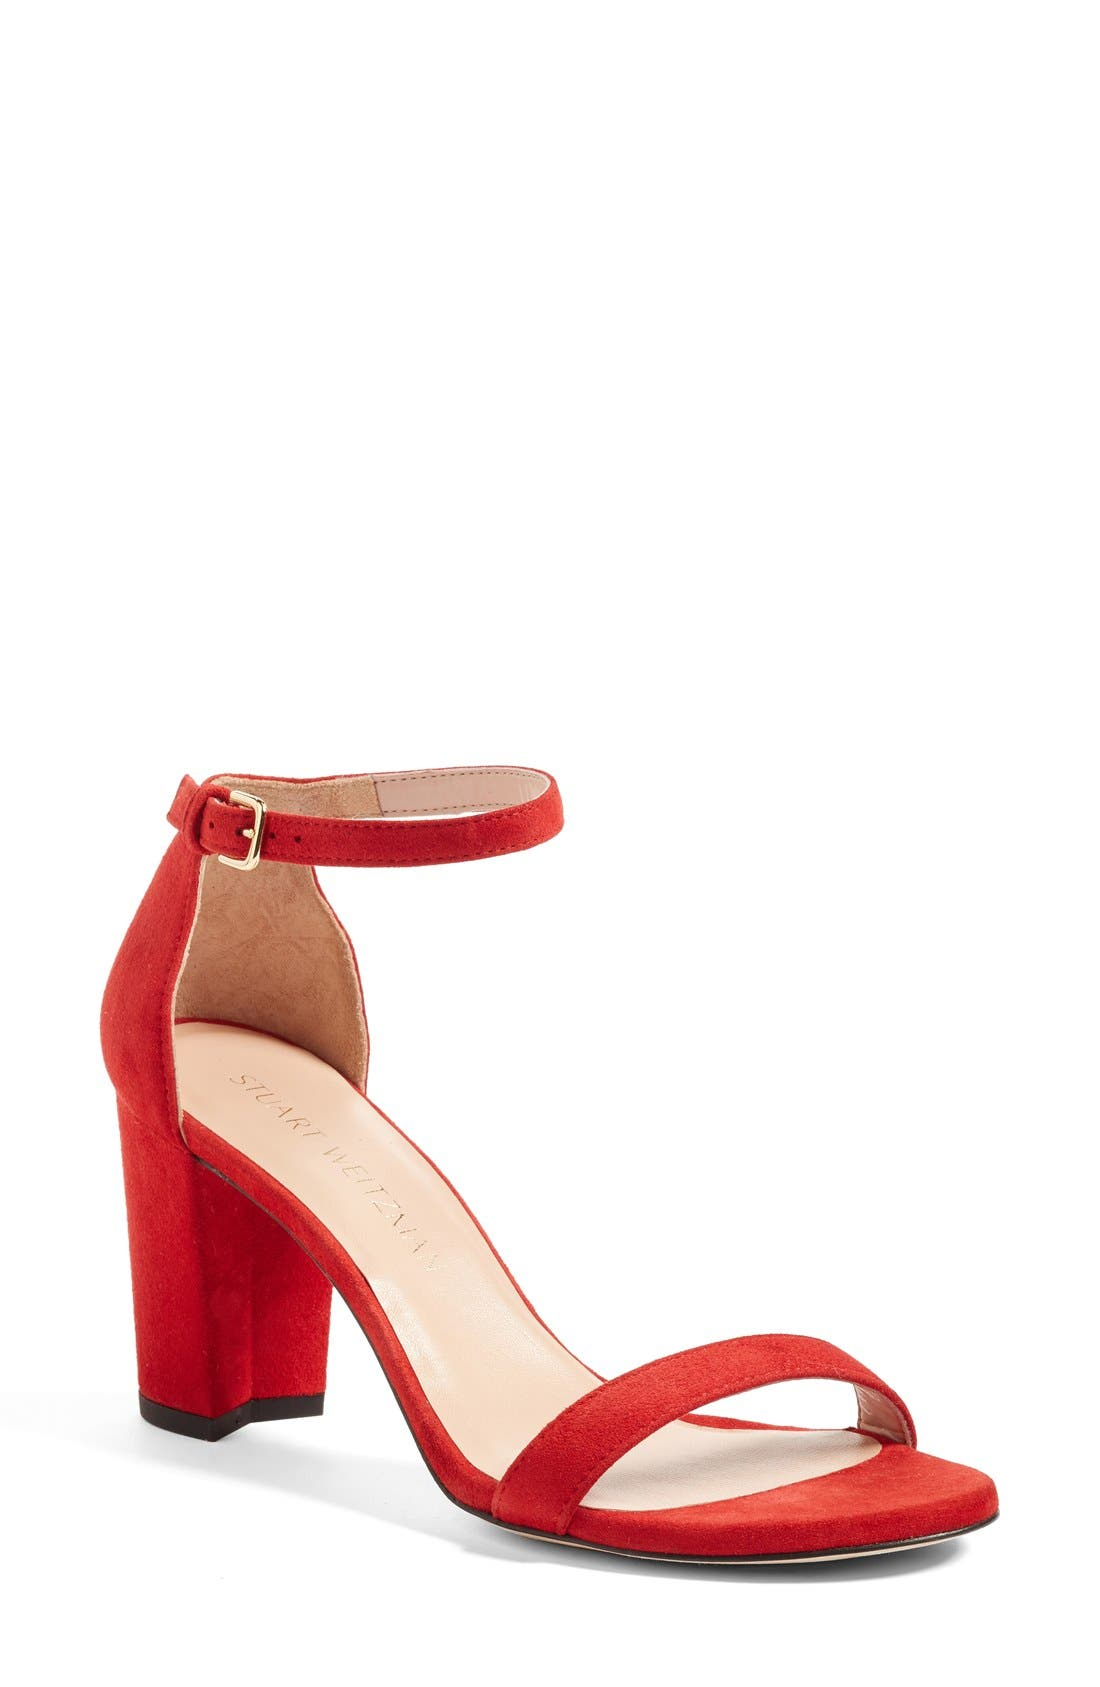 NearlyNude Ankle Strap Sandal,                             Main thumbnail 26, color,